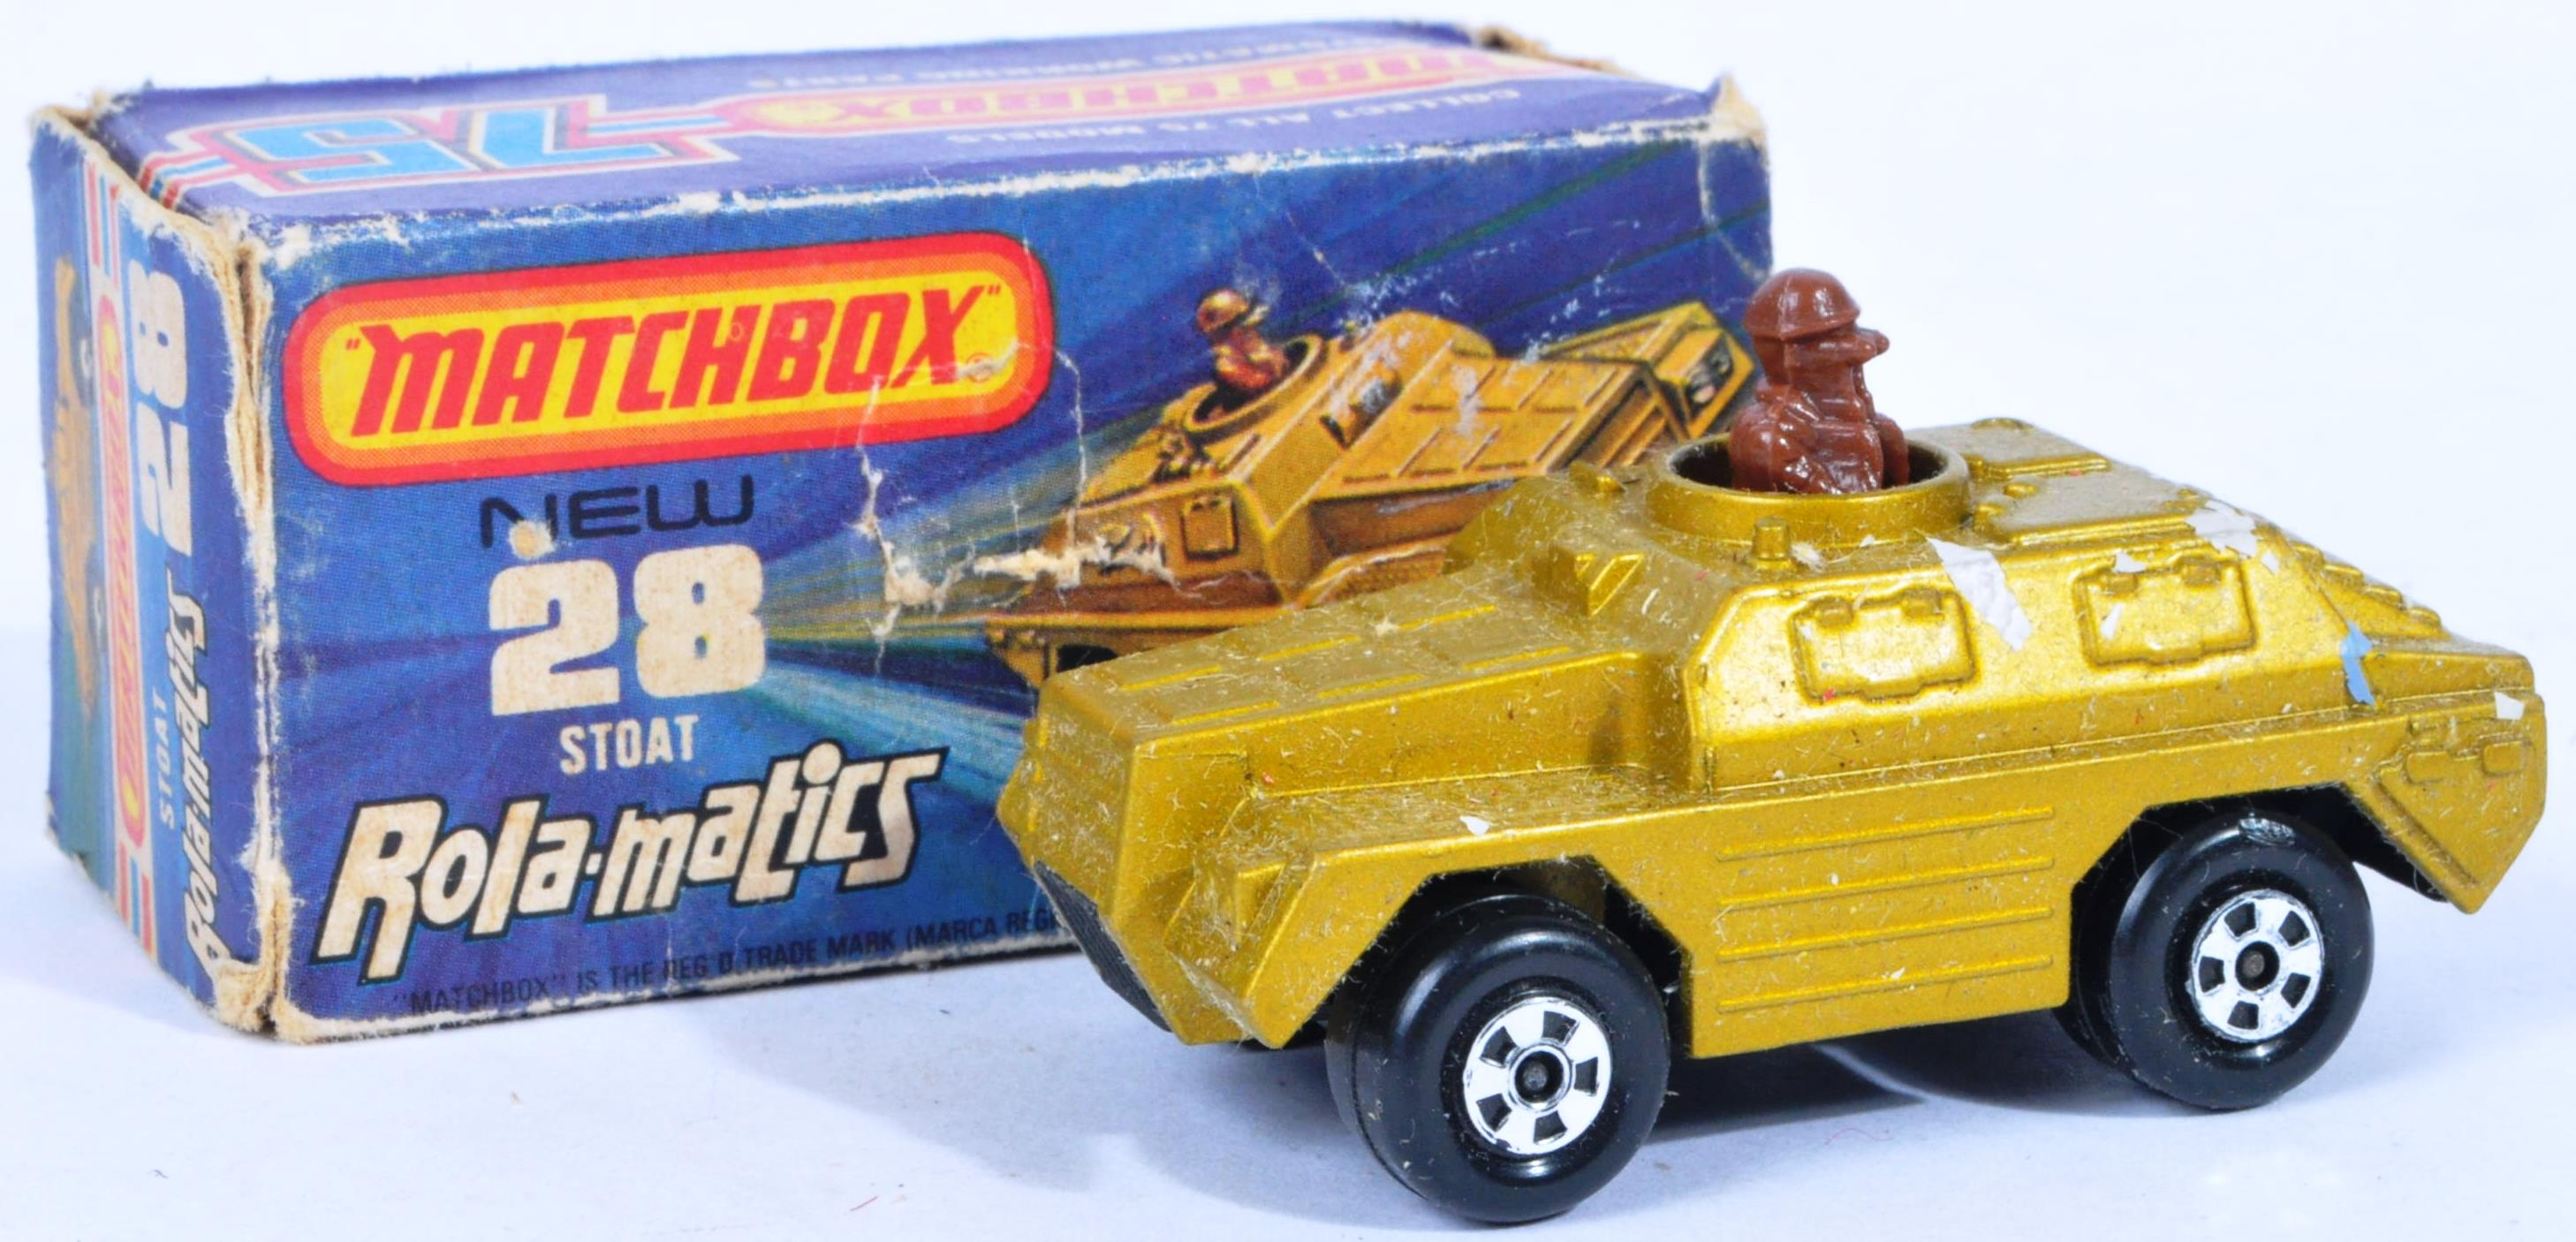 LARGE COLLECTION OF LESNEY MATCHBOX DIECAST MODELS - Image 8 of 8